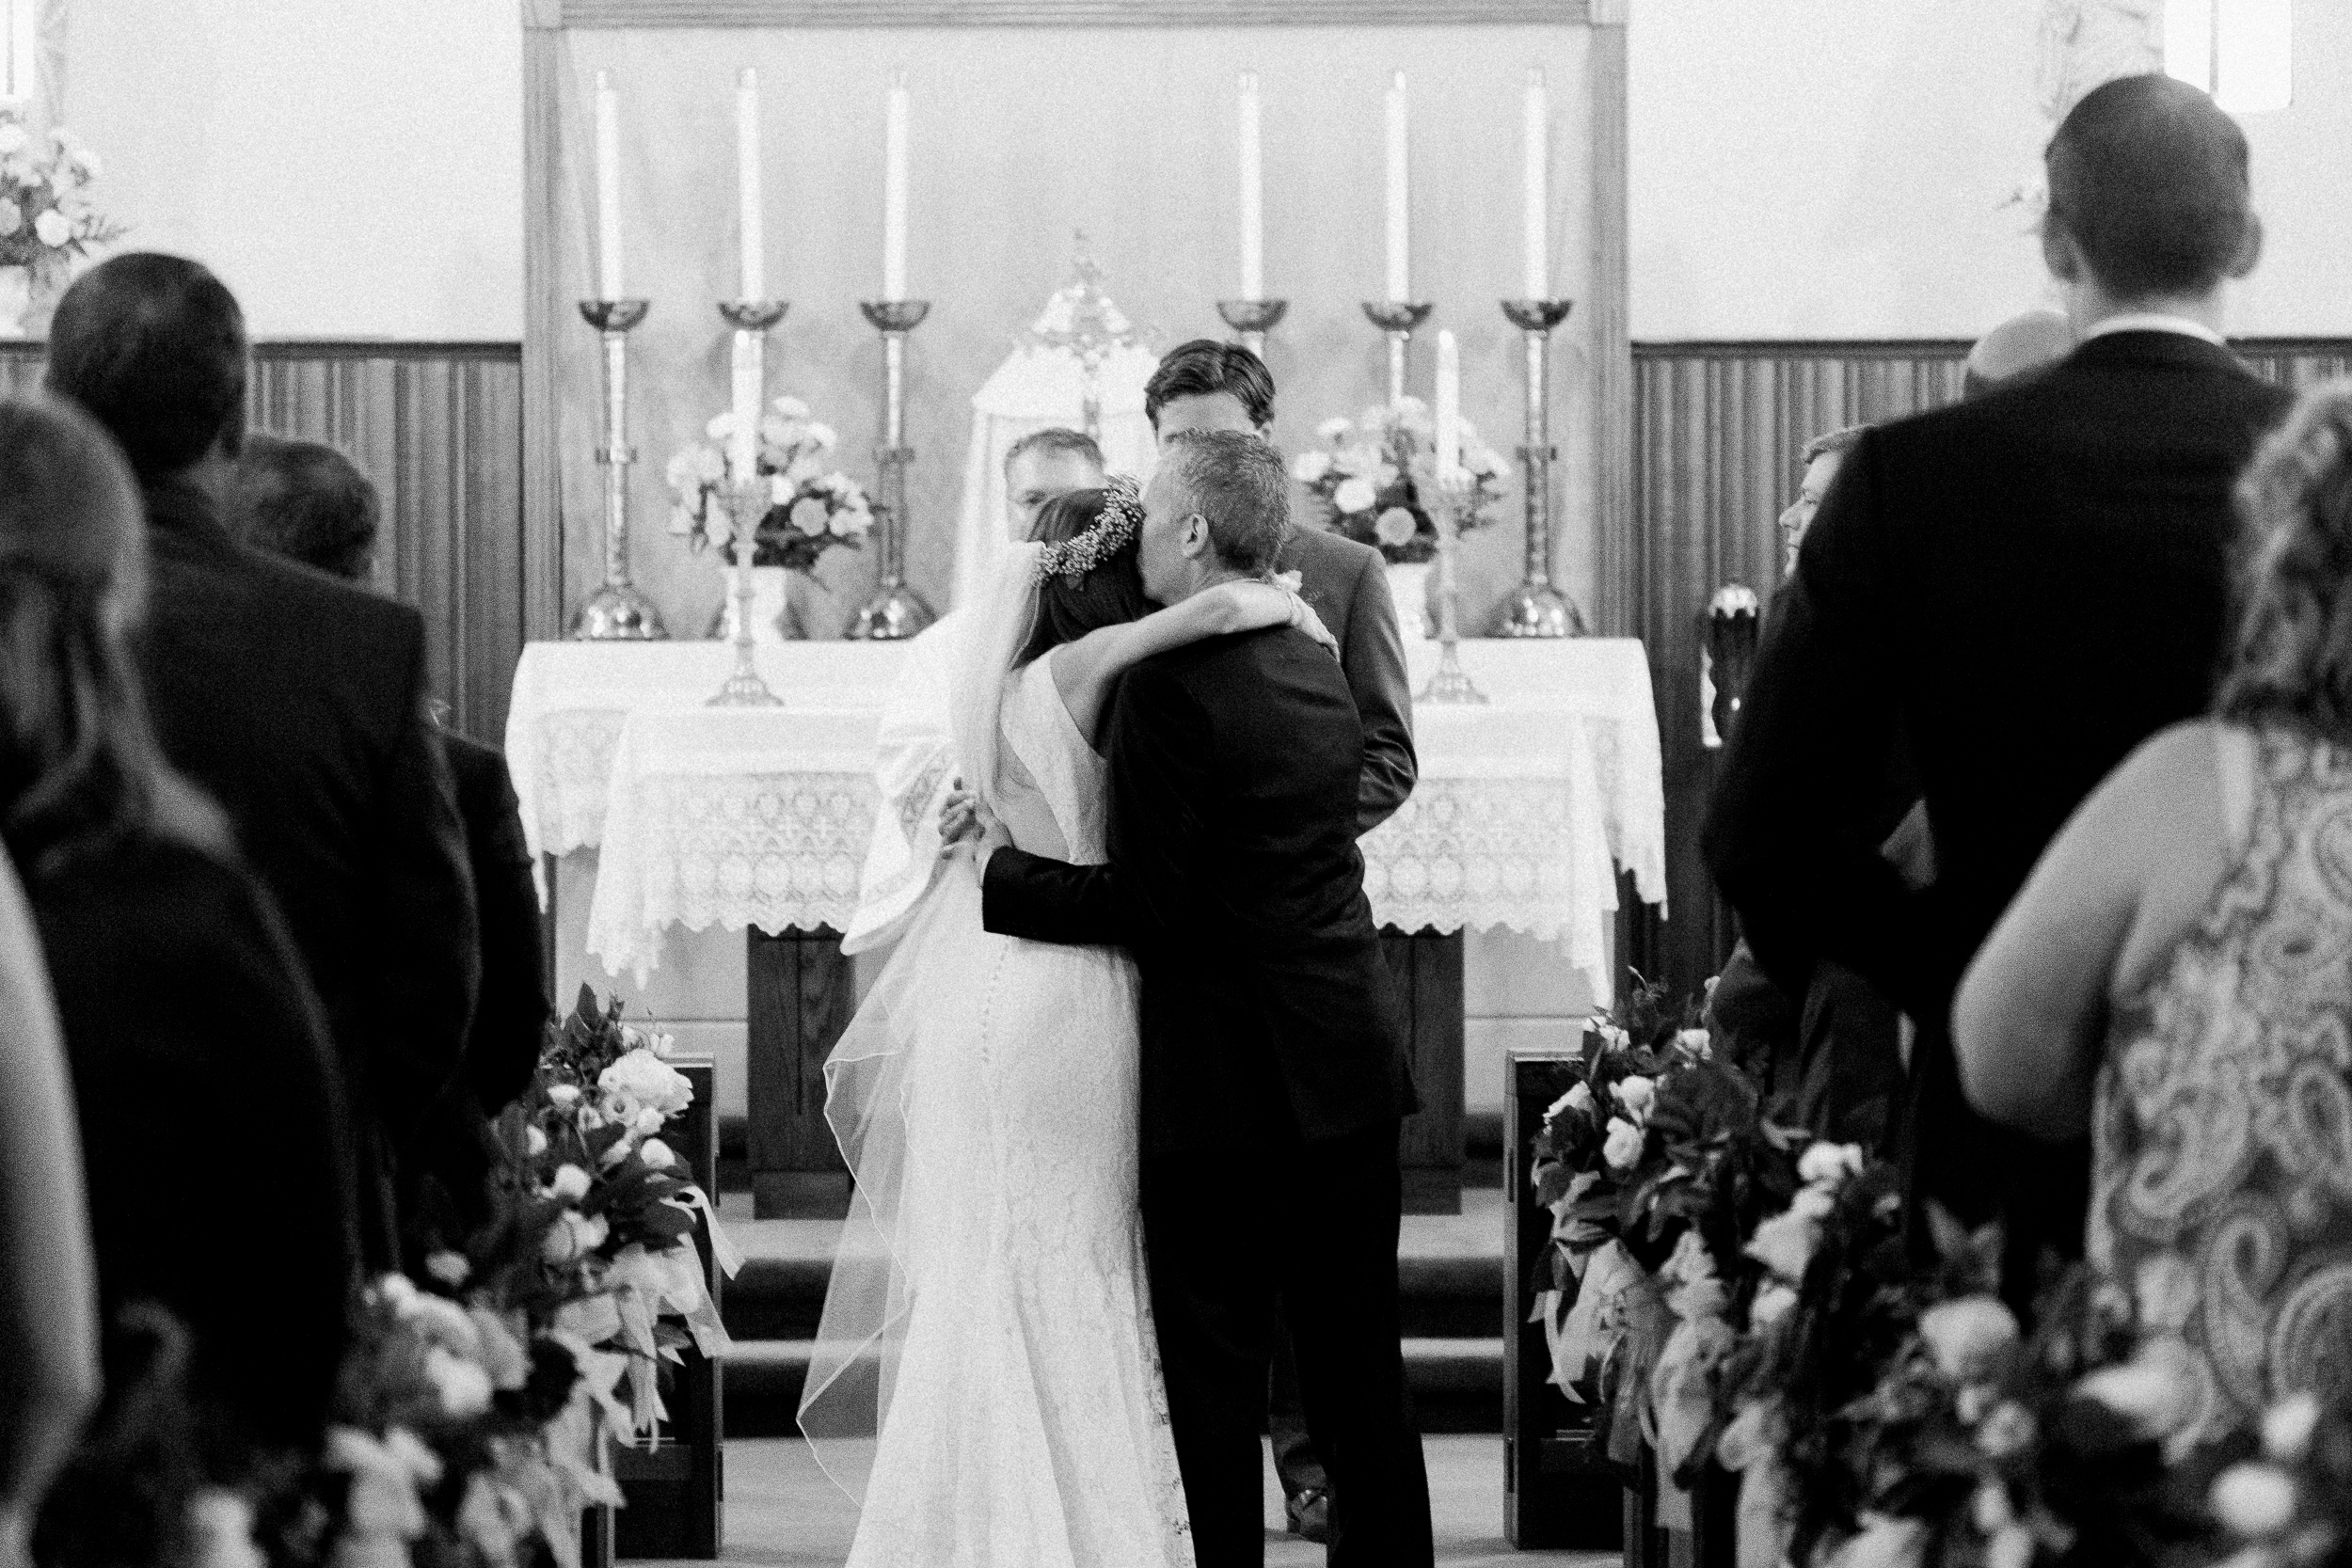 father-of-the-bride-giving-daughter-away-at-ceremony